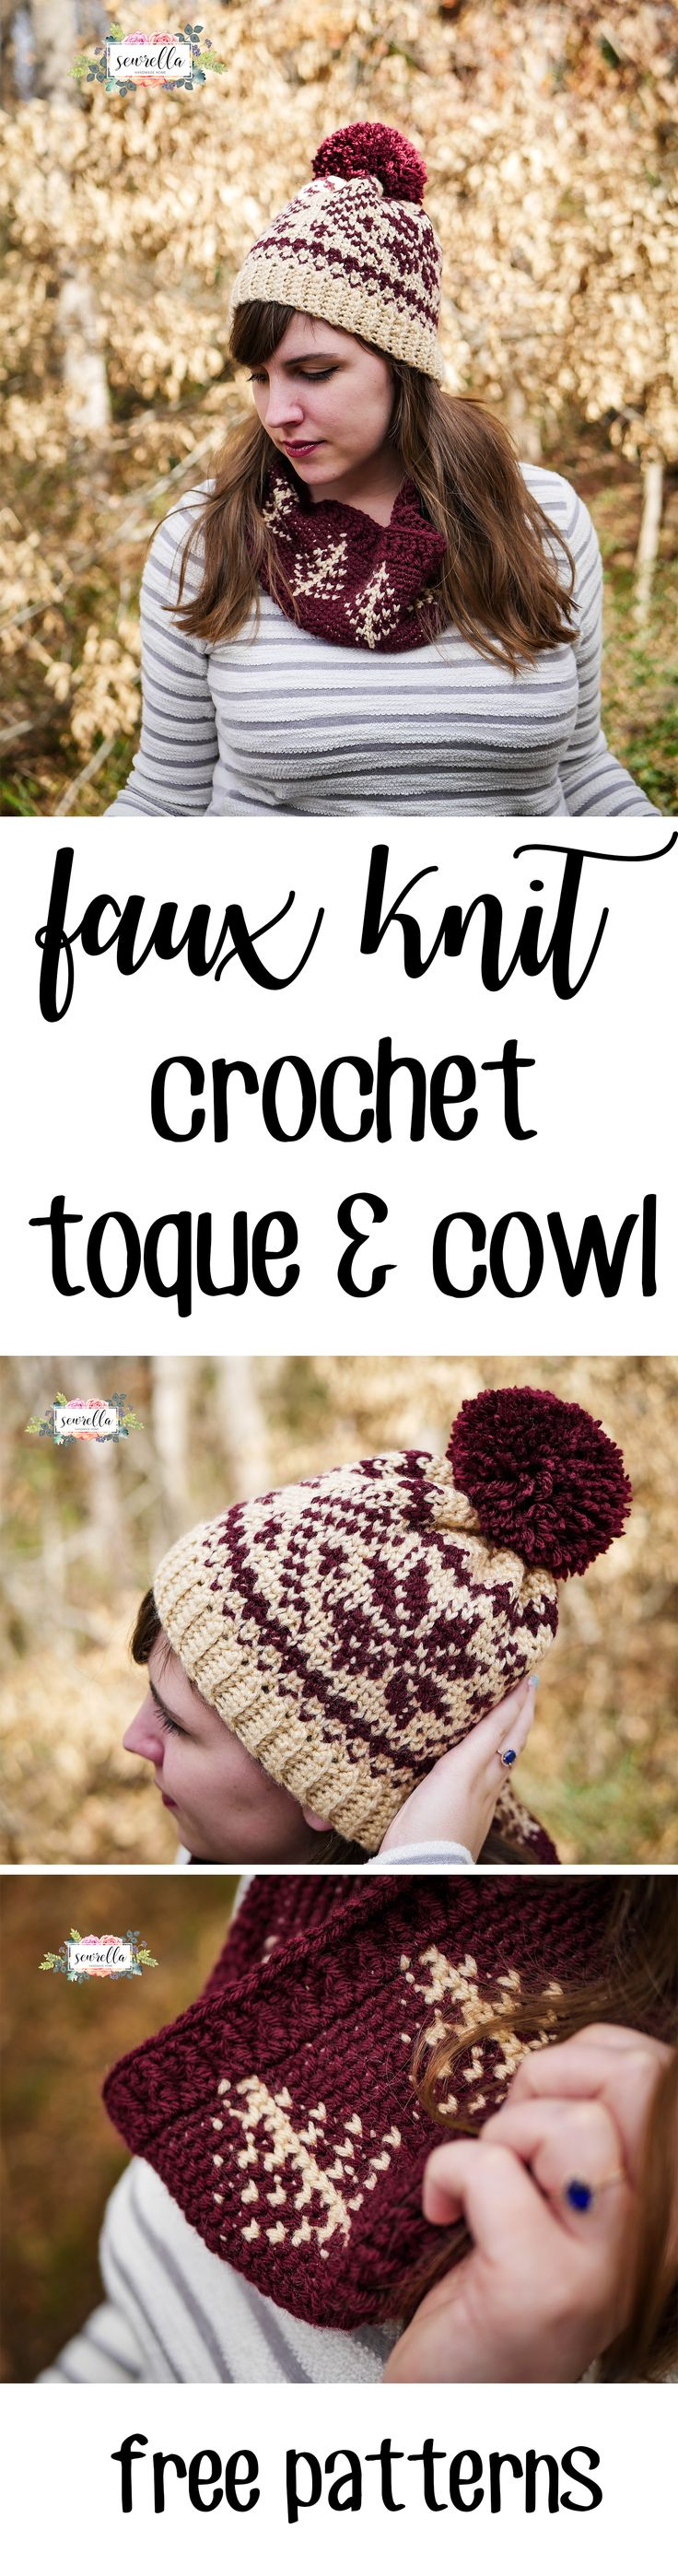 Faux Knit Fair Isle Crochet Toque Hat and Cowl Scarf Crochet Patterns are now on the blog! They use a basic center single crochet stitch and are oh so easy to make - even for beginner crocheters! | Free patterns from Sewrella